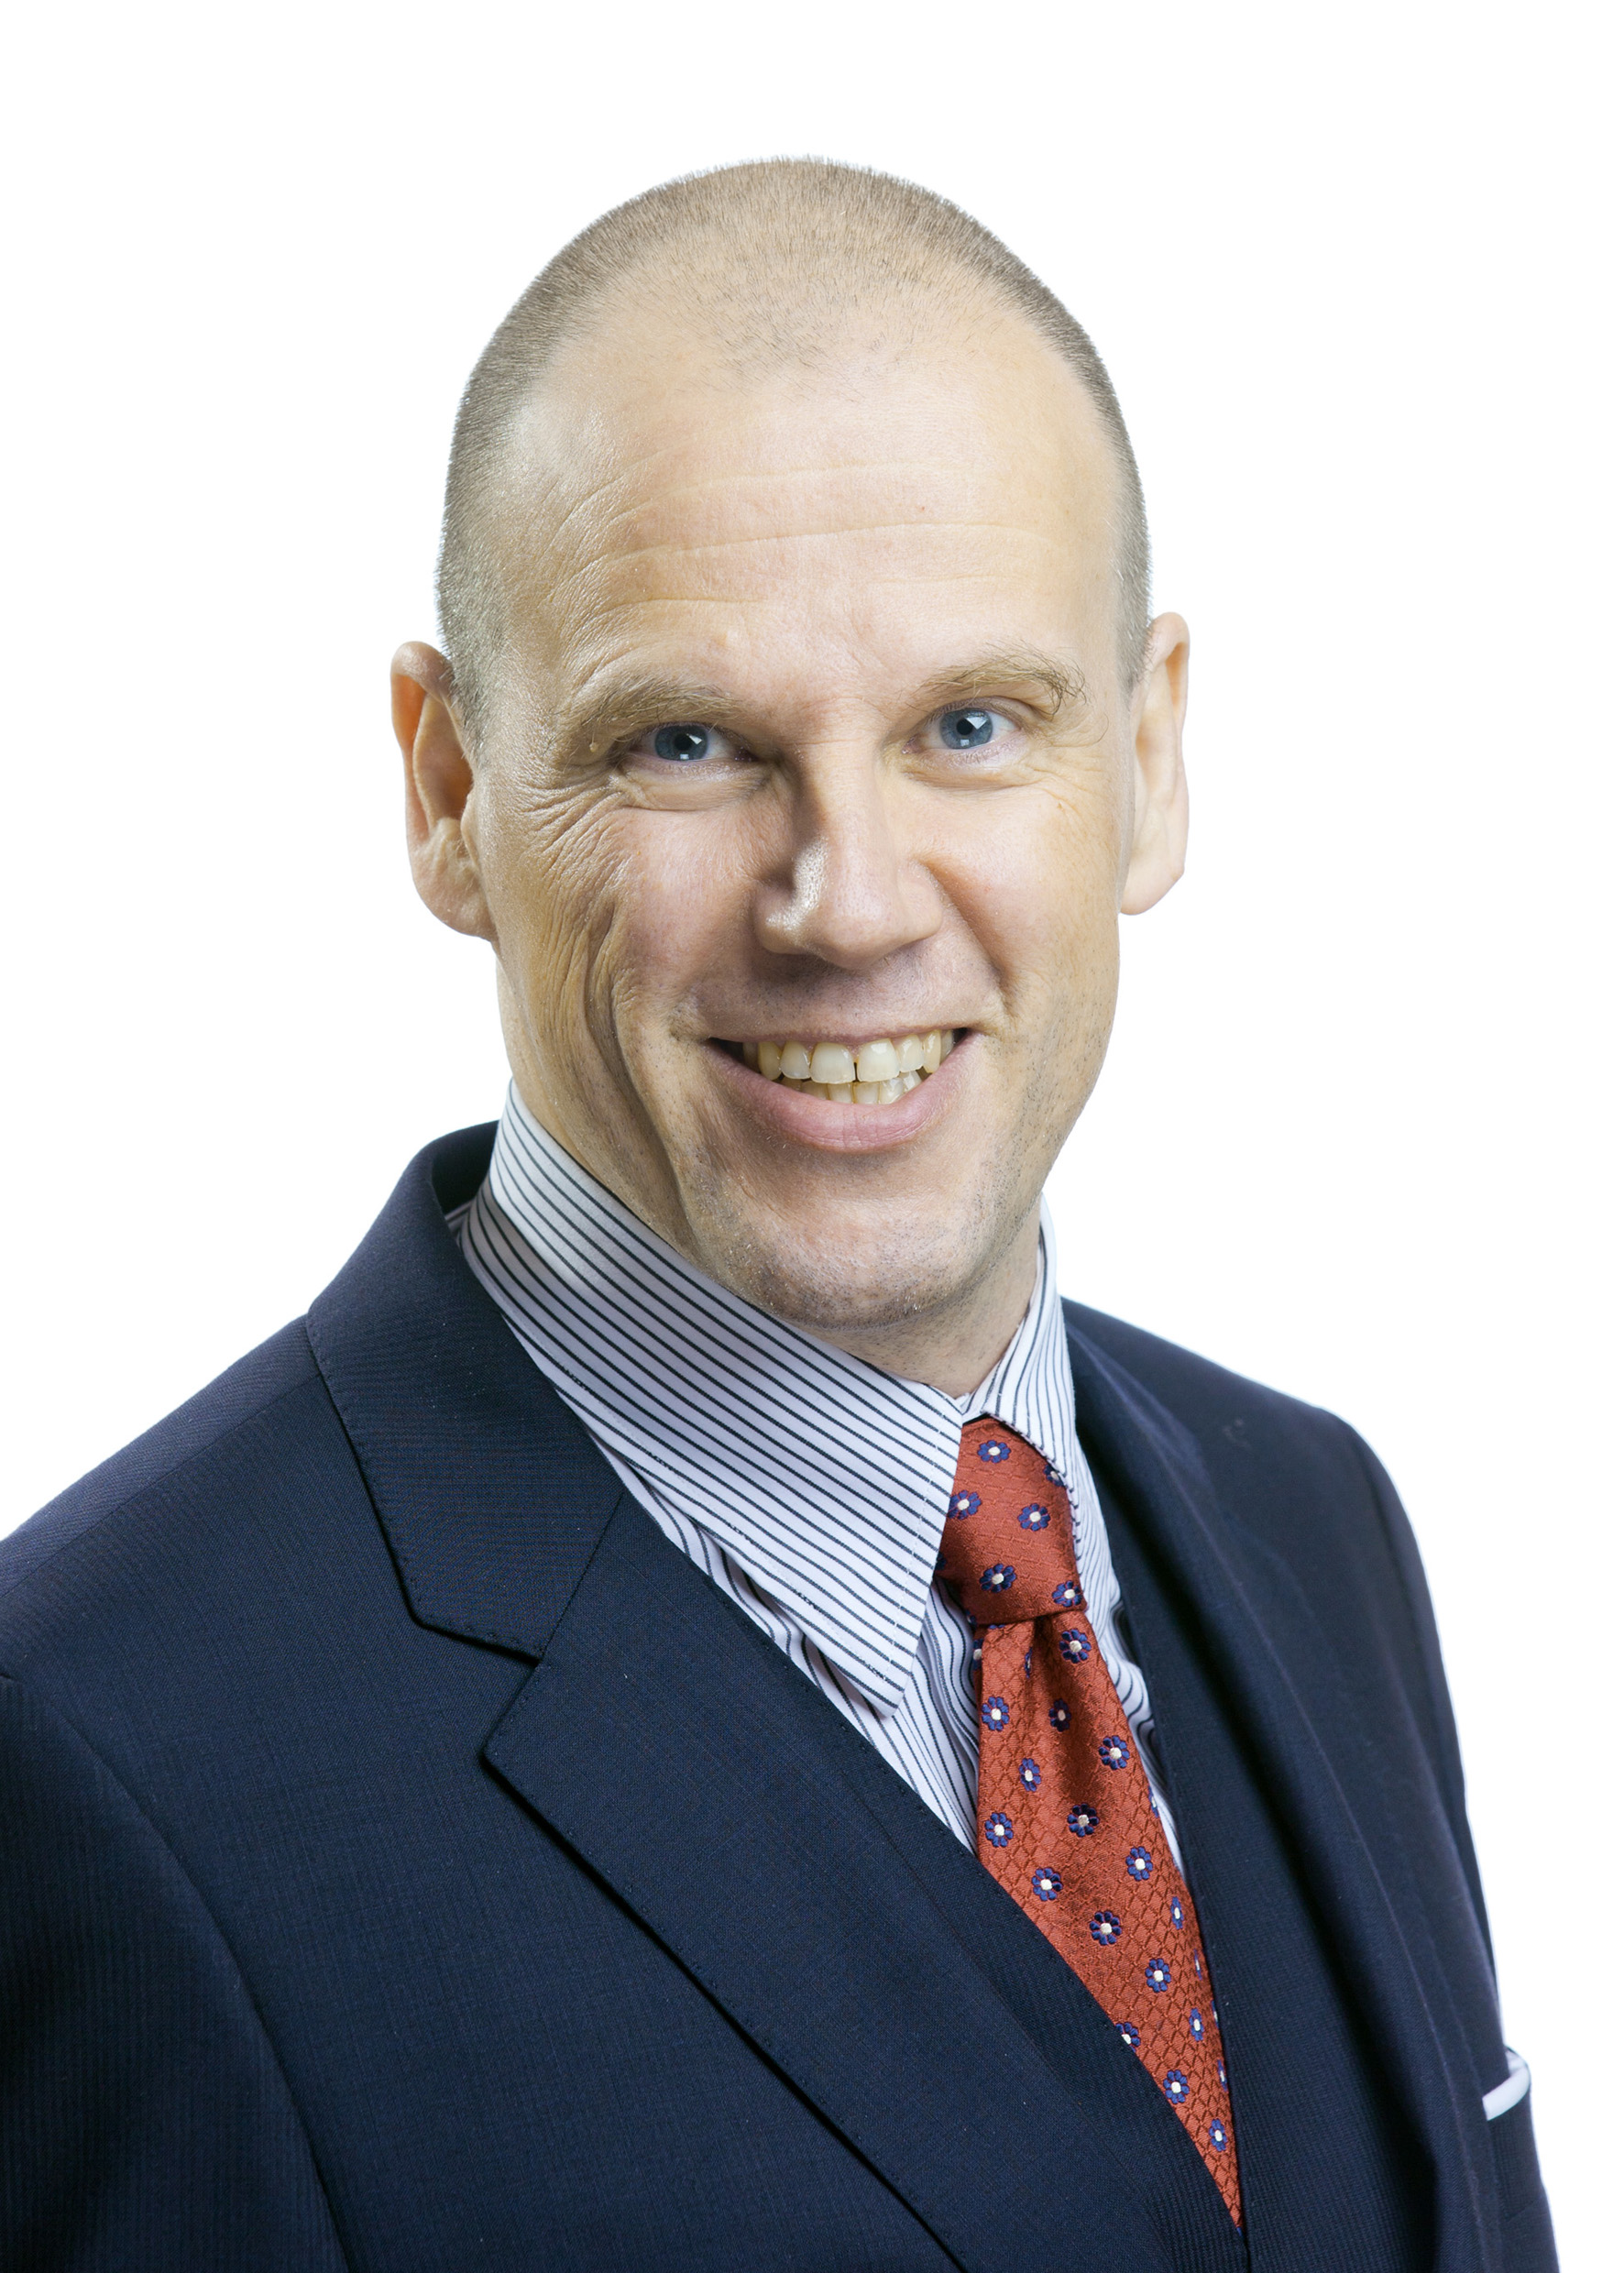 Perttu Louhiluoto will be the president of Metso's Flow Control business.